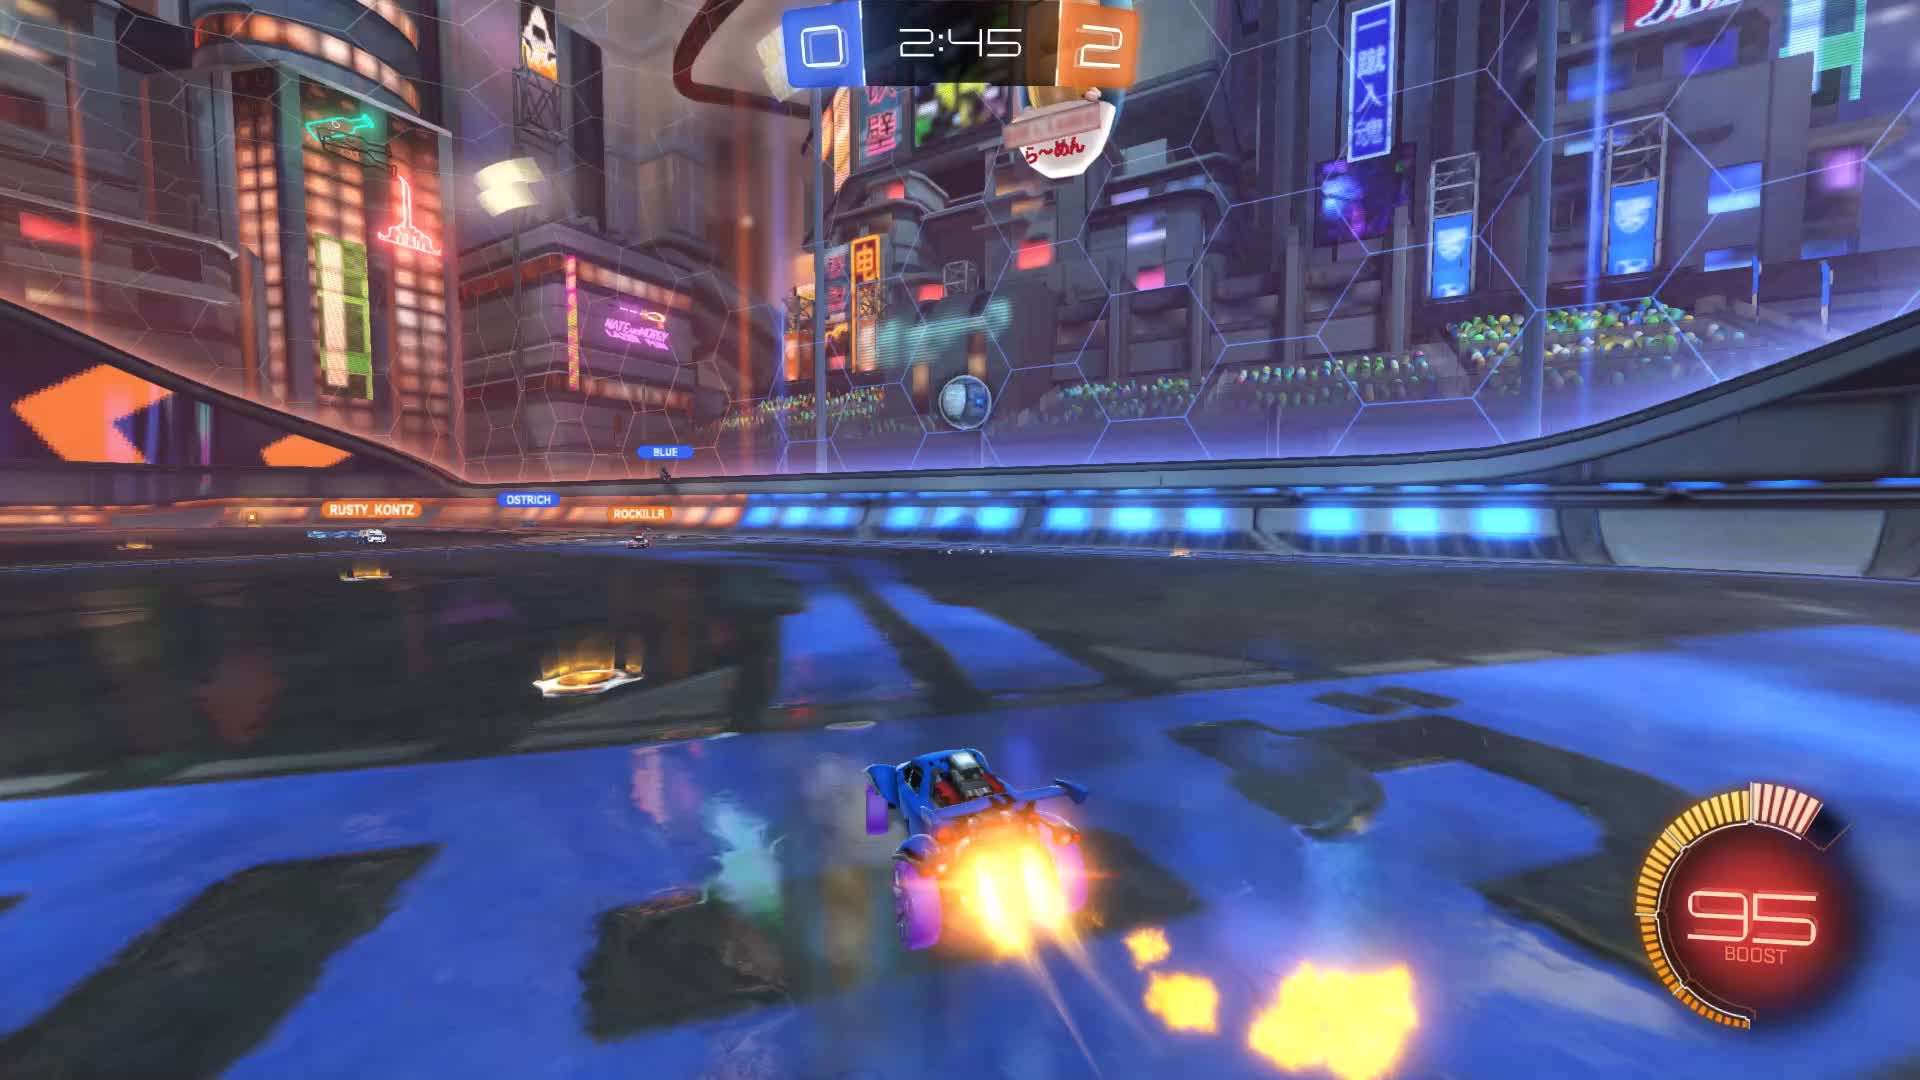 Gif Your Game, GifYourGame, Rocket League, RocketLeague, VEX Nexus, Goal 3: VEX Nexus GIFs